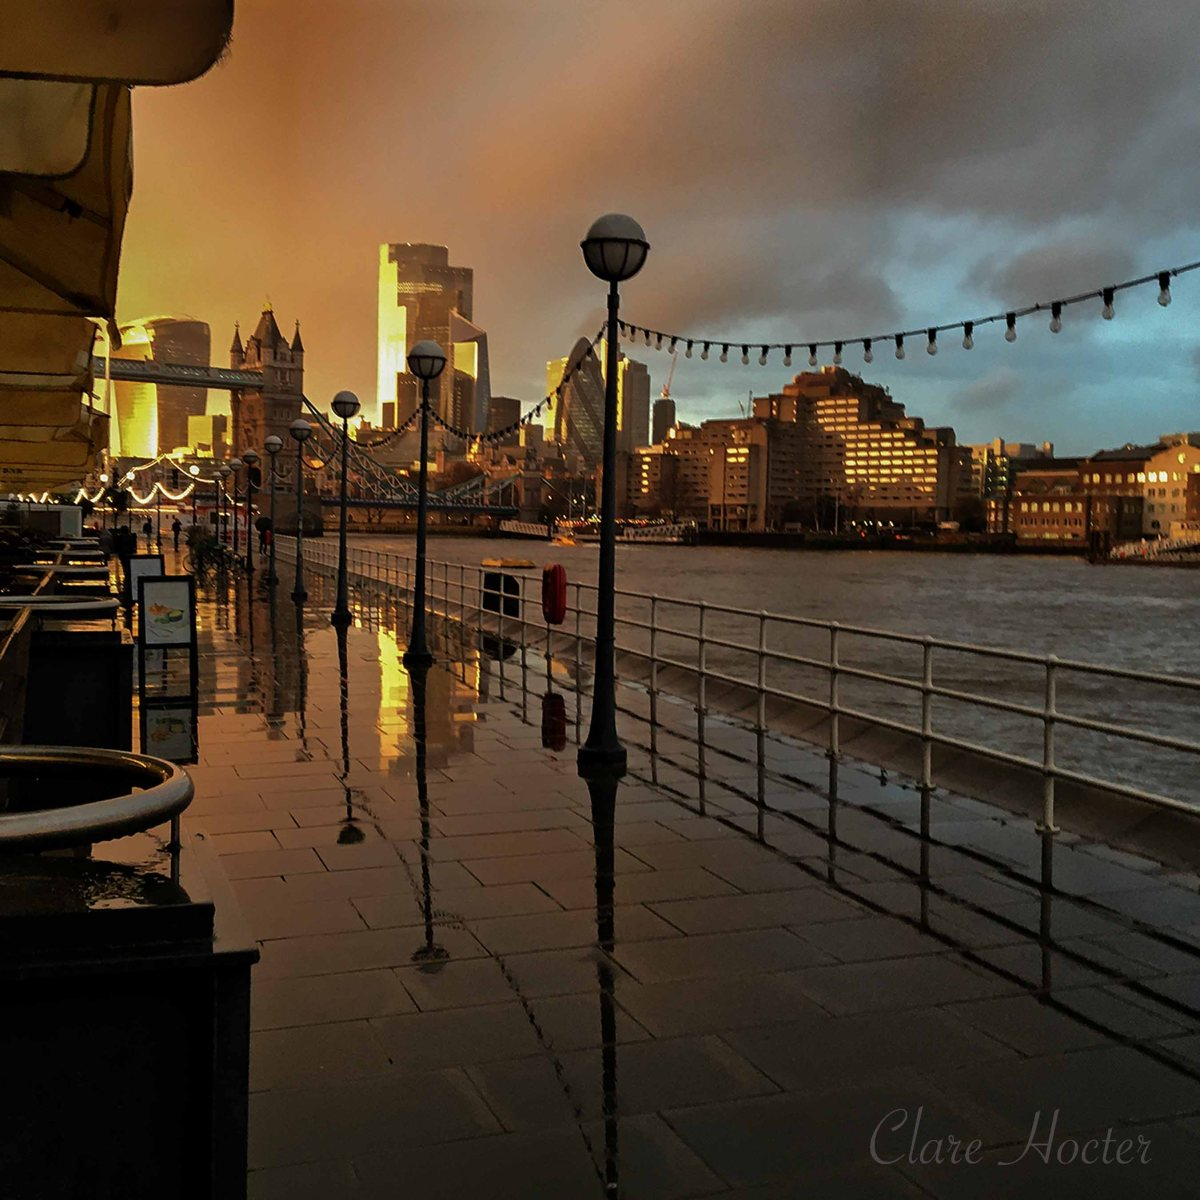 clare hocter photography, london landscape photography, london art photography, tower bridge photograph